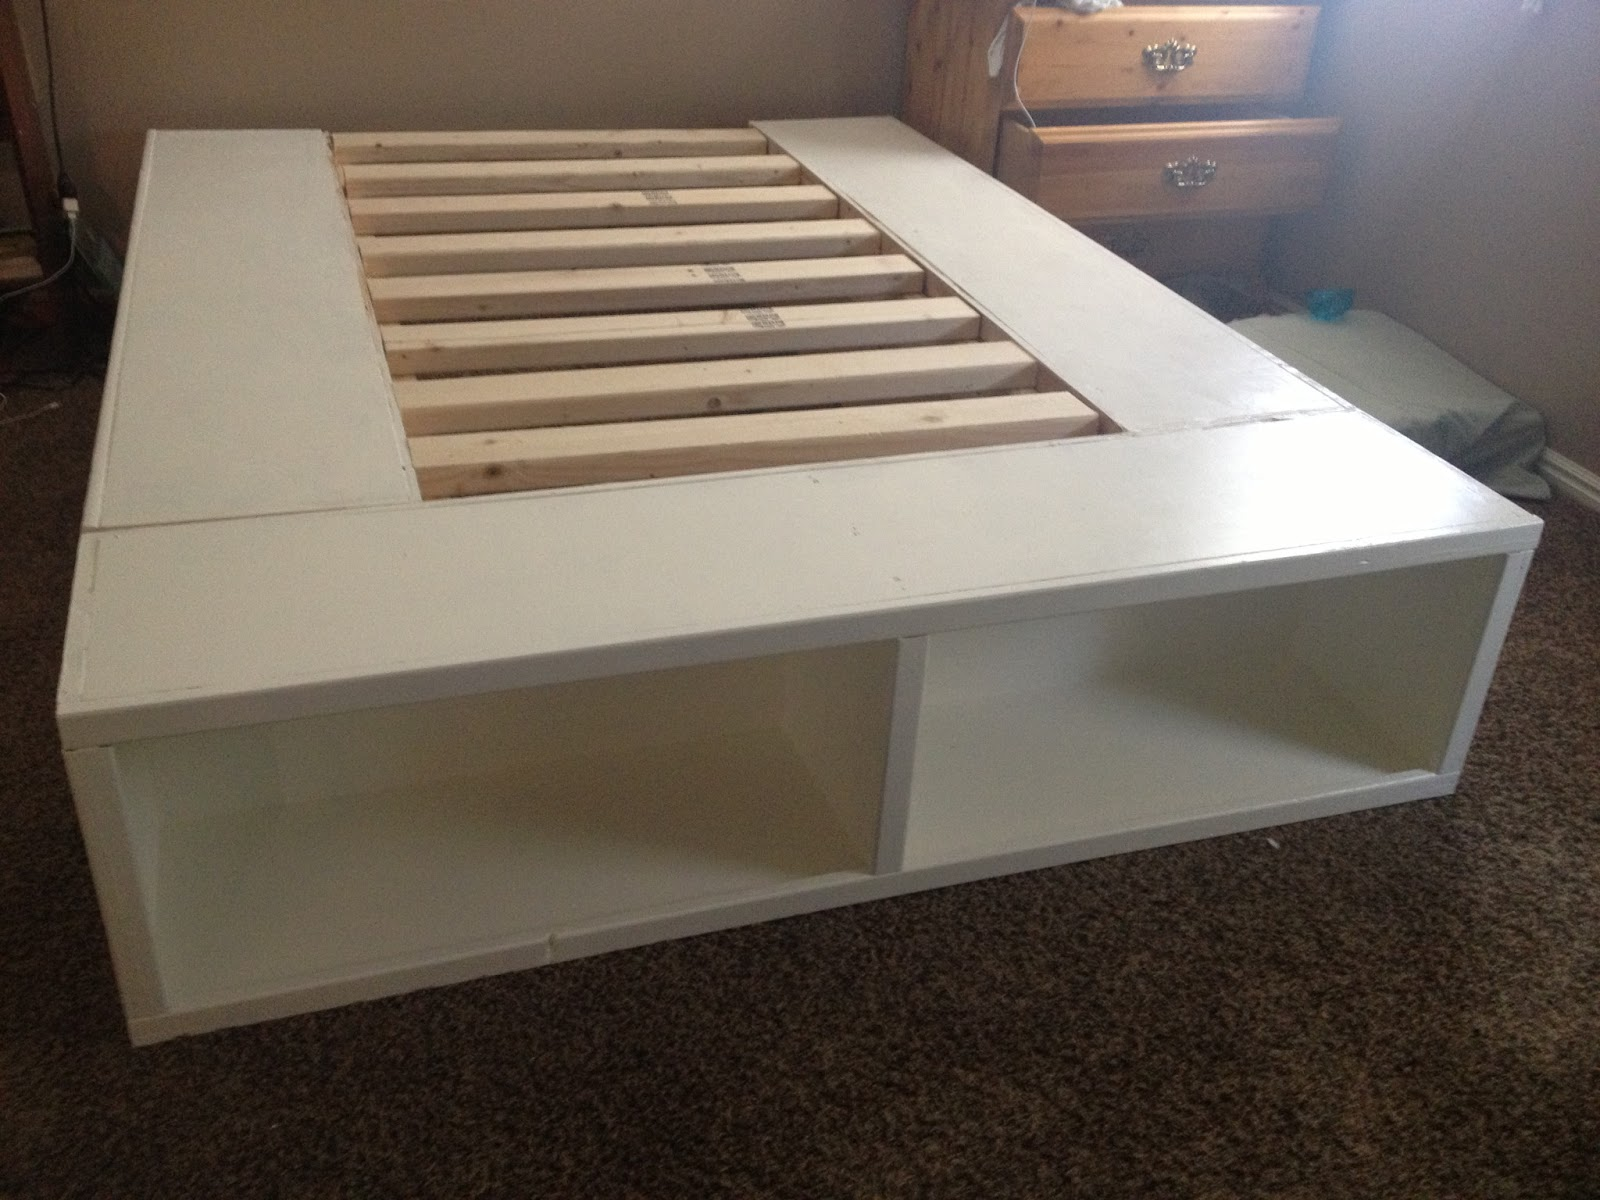 How to Build a Cheap King Size Platform Bed